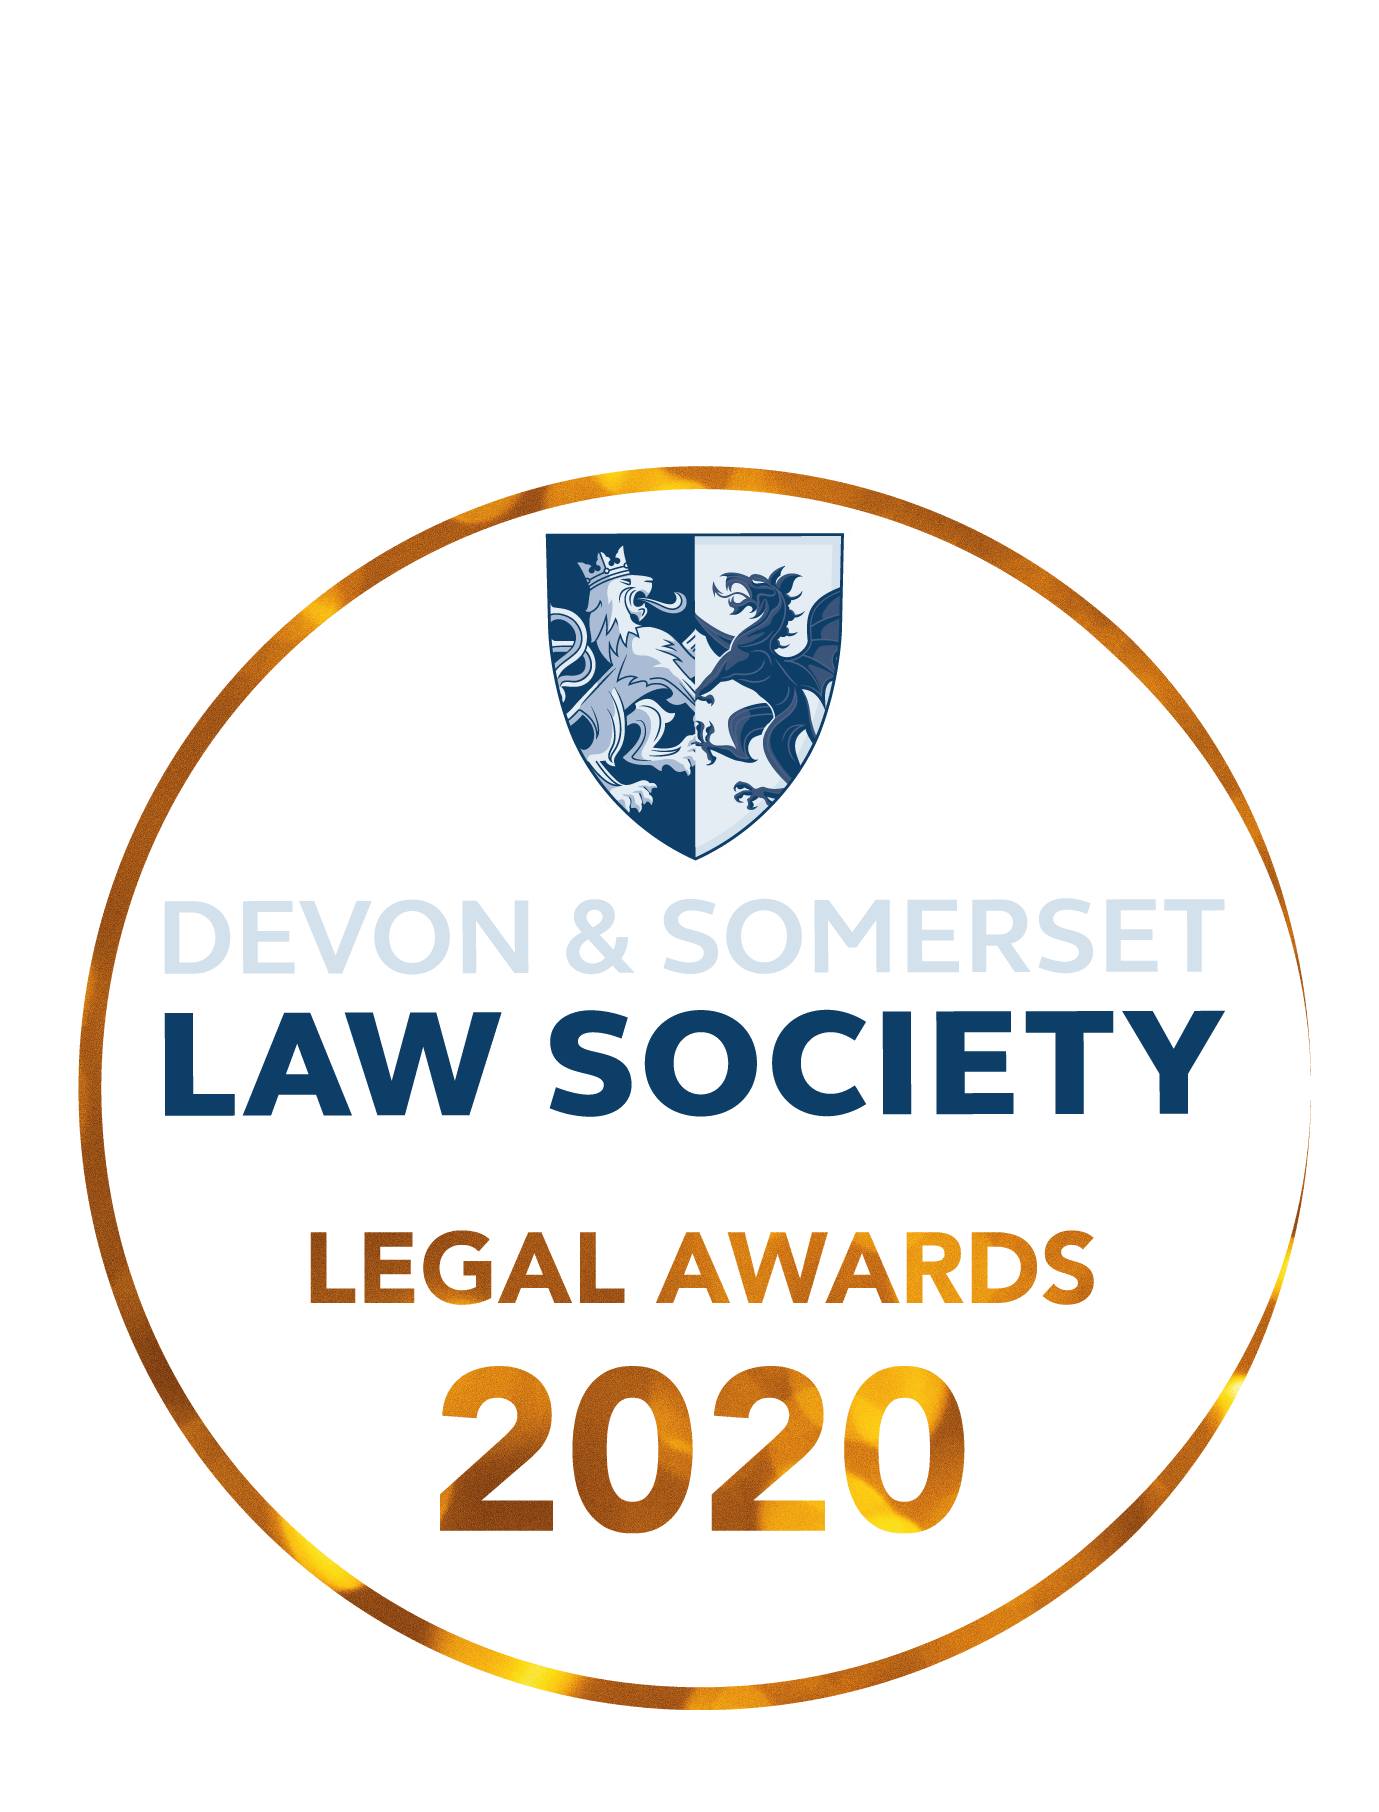 Devon And Somerset Law Society Legal Awards